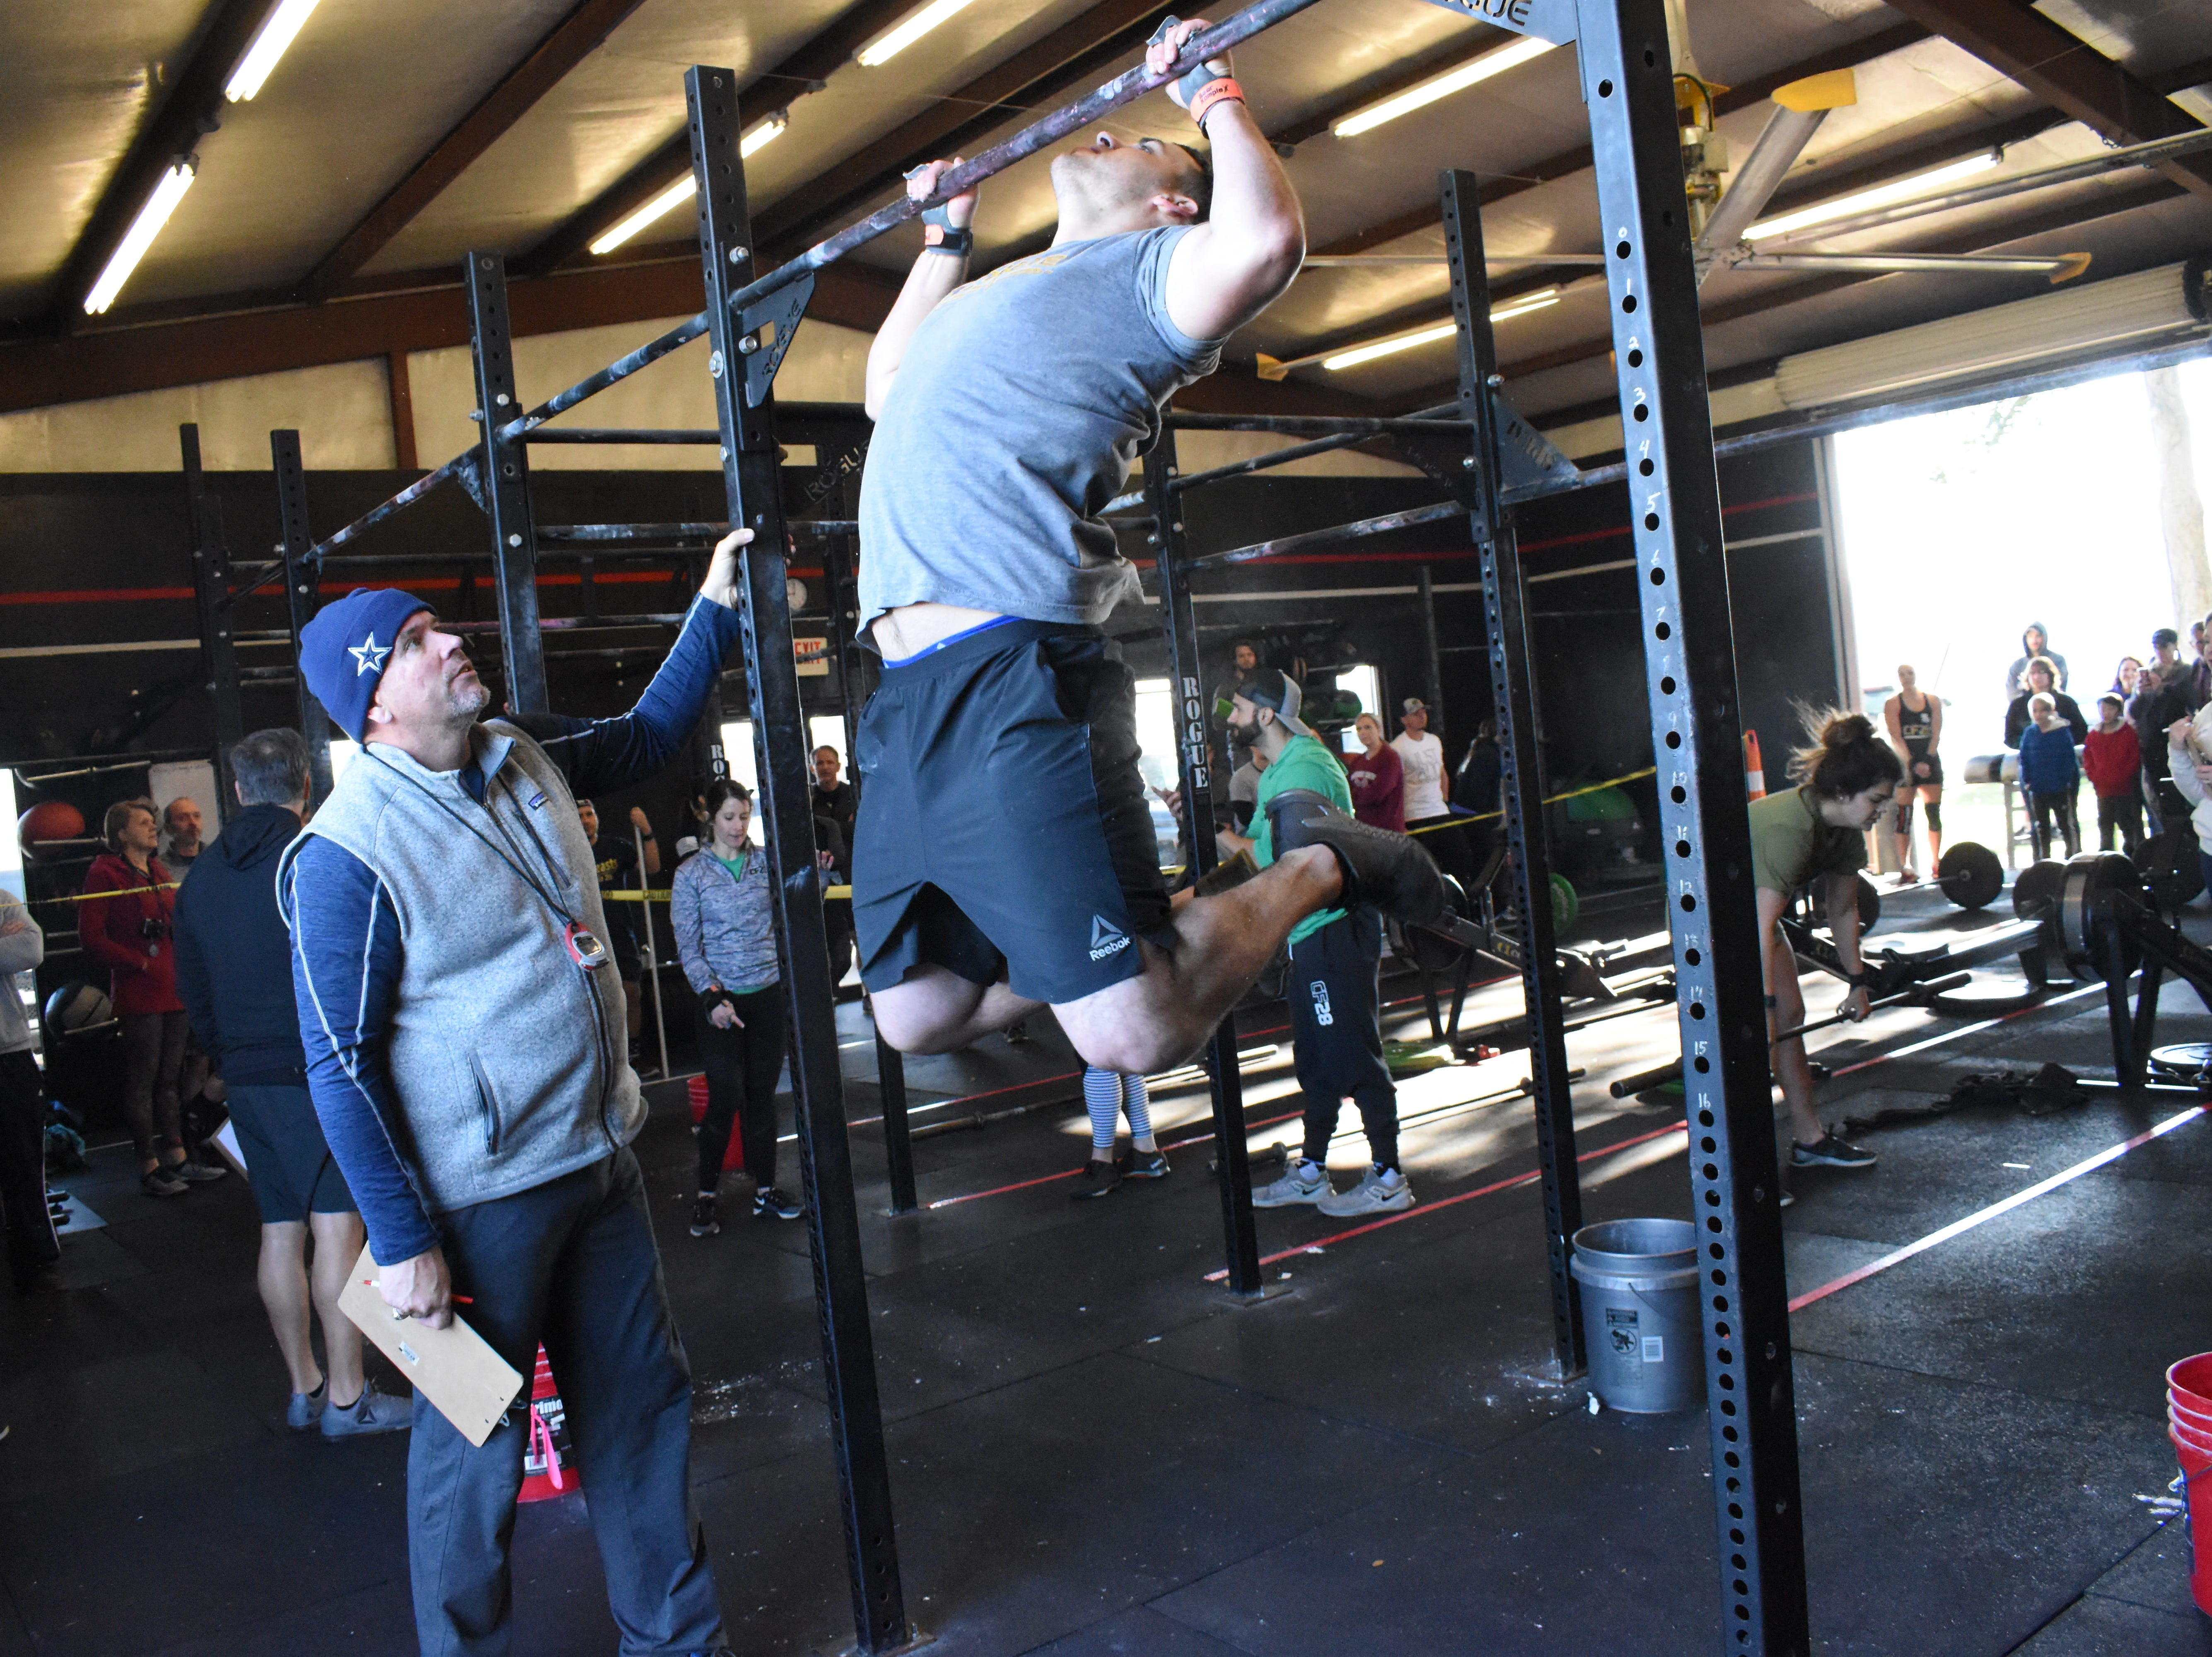 Fred Ruggles (left), a judge in the Iron Boot Classic, watches Nick Luneau, of Iron Boot, complete a set of butterfly pull-ups in the Iron Boot Classic. Twenty teams from six CrossFit affiliates in the area competed in the Iron Boot Classic  Saturday, Jan. 26, 2019 at the Iron Boot, formerly CrossFit Alexandria. Each team consisted of two men and two women who competed in five heats throuighout the day. Some of the exercises they performed were classic workouts such as deadlifts, burppees, wall balls and thrusters. William Albritton, owner of Iron Boot, said the competition involved the classic movements so everyone who works out could participate.